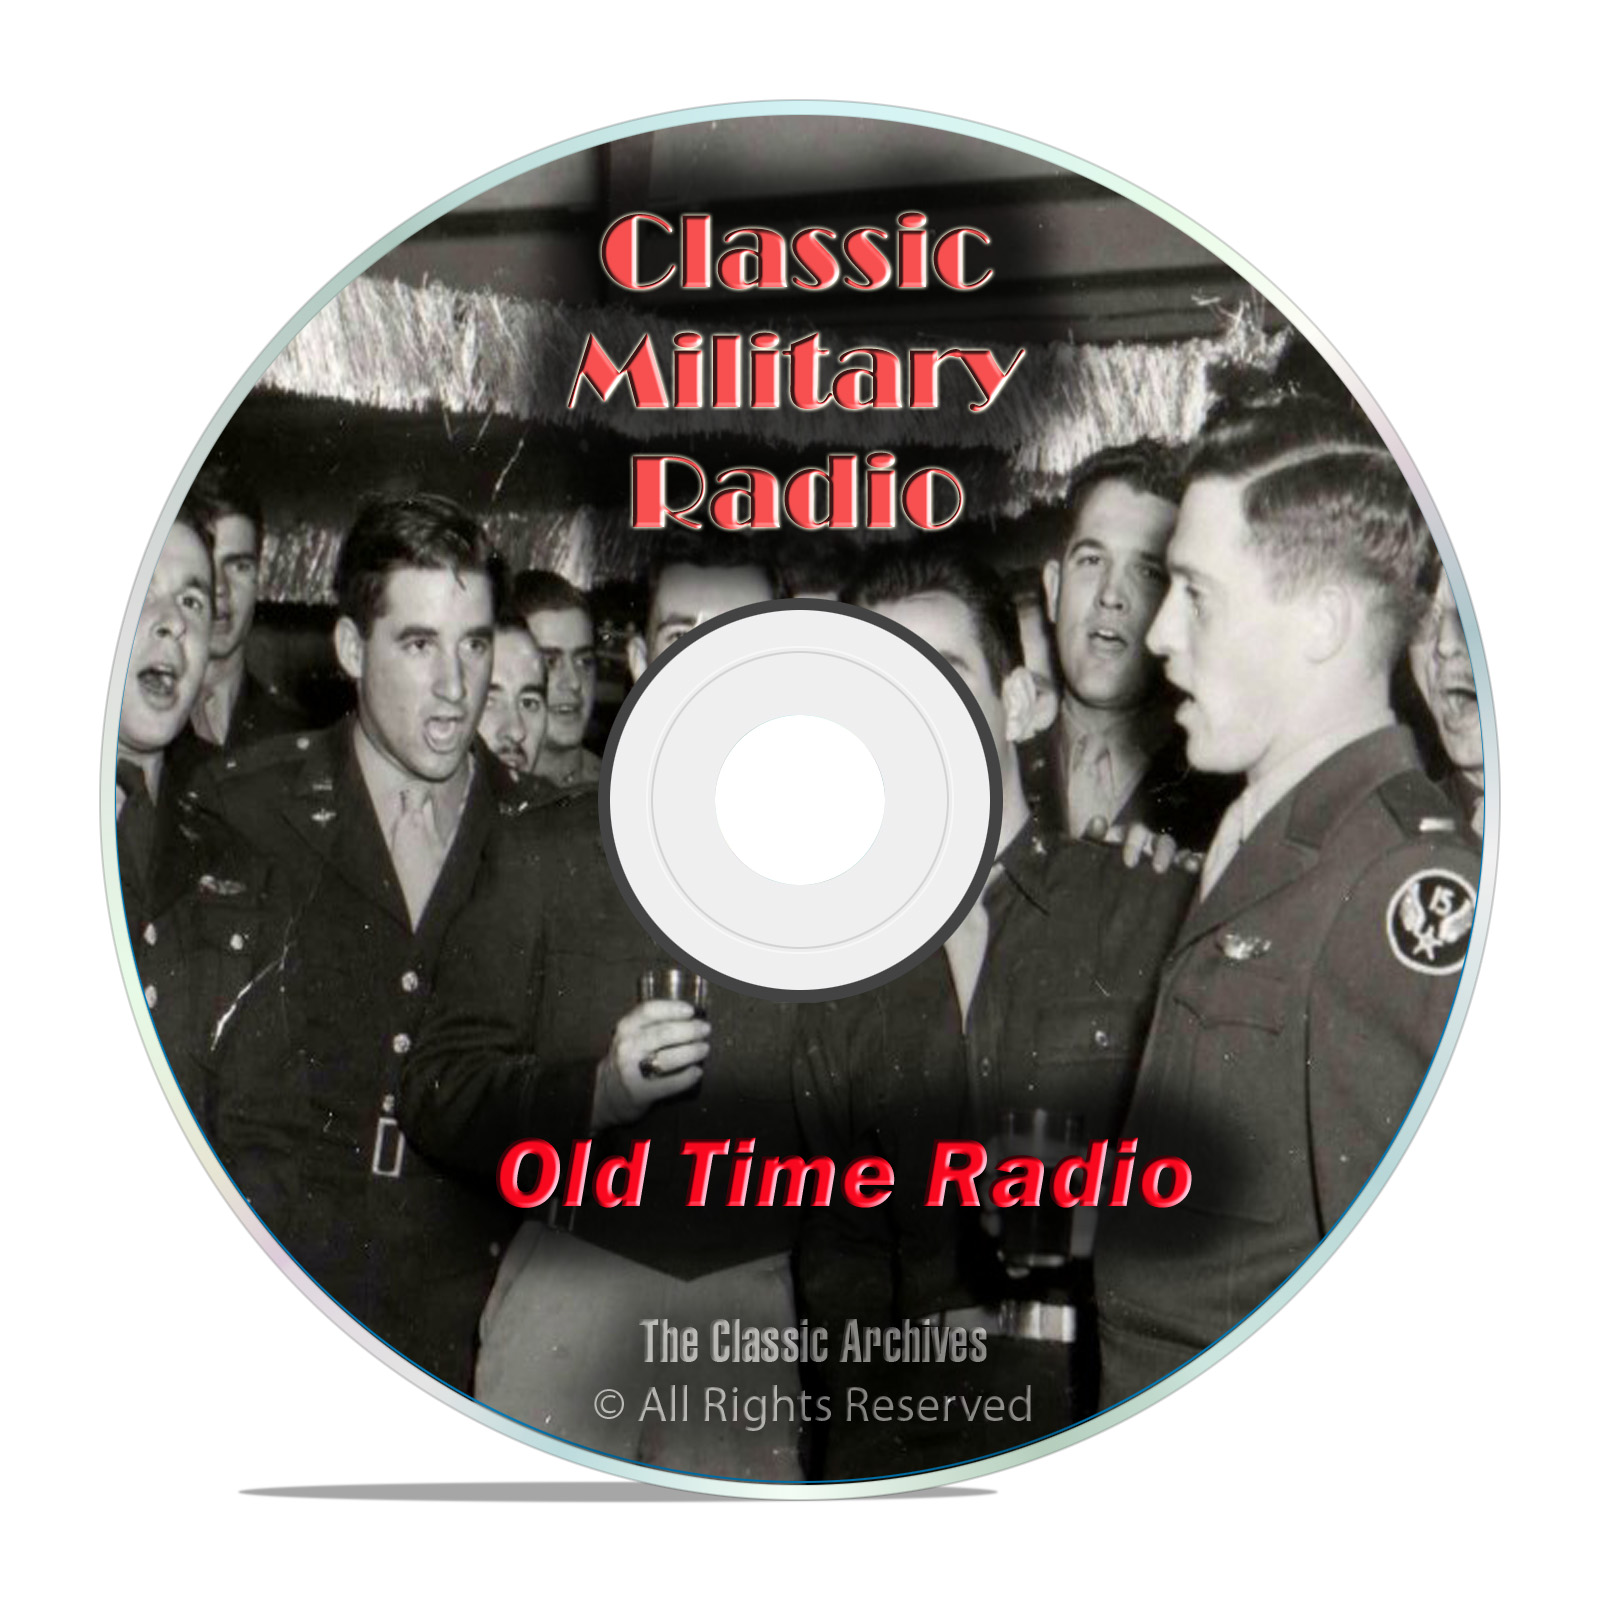 852 Classic Military Old Time Radio Shows, Army, Navy, Marines OTR mp3 DVD